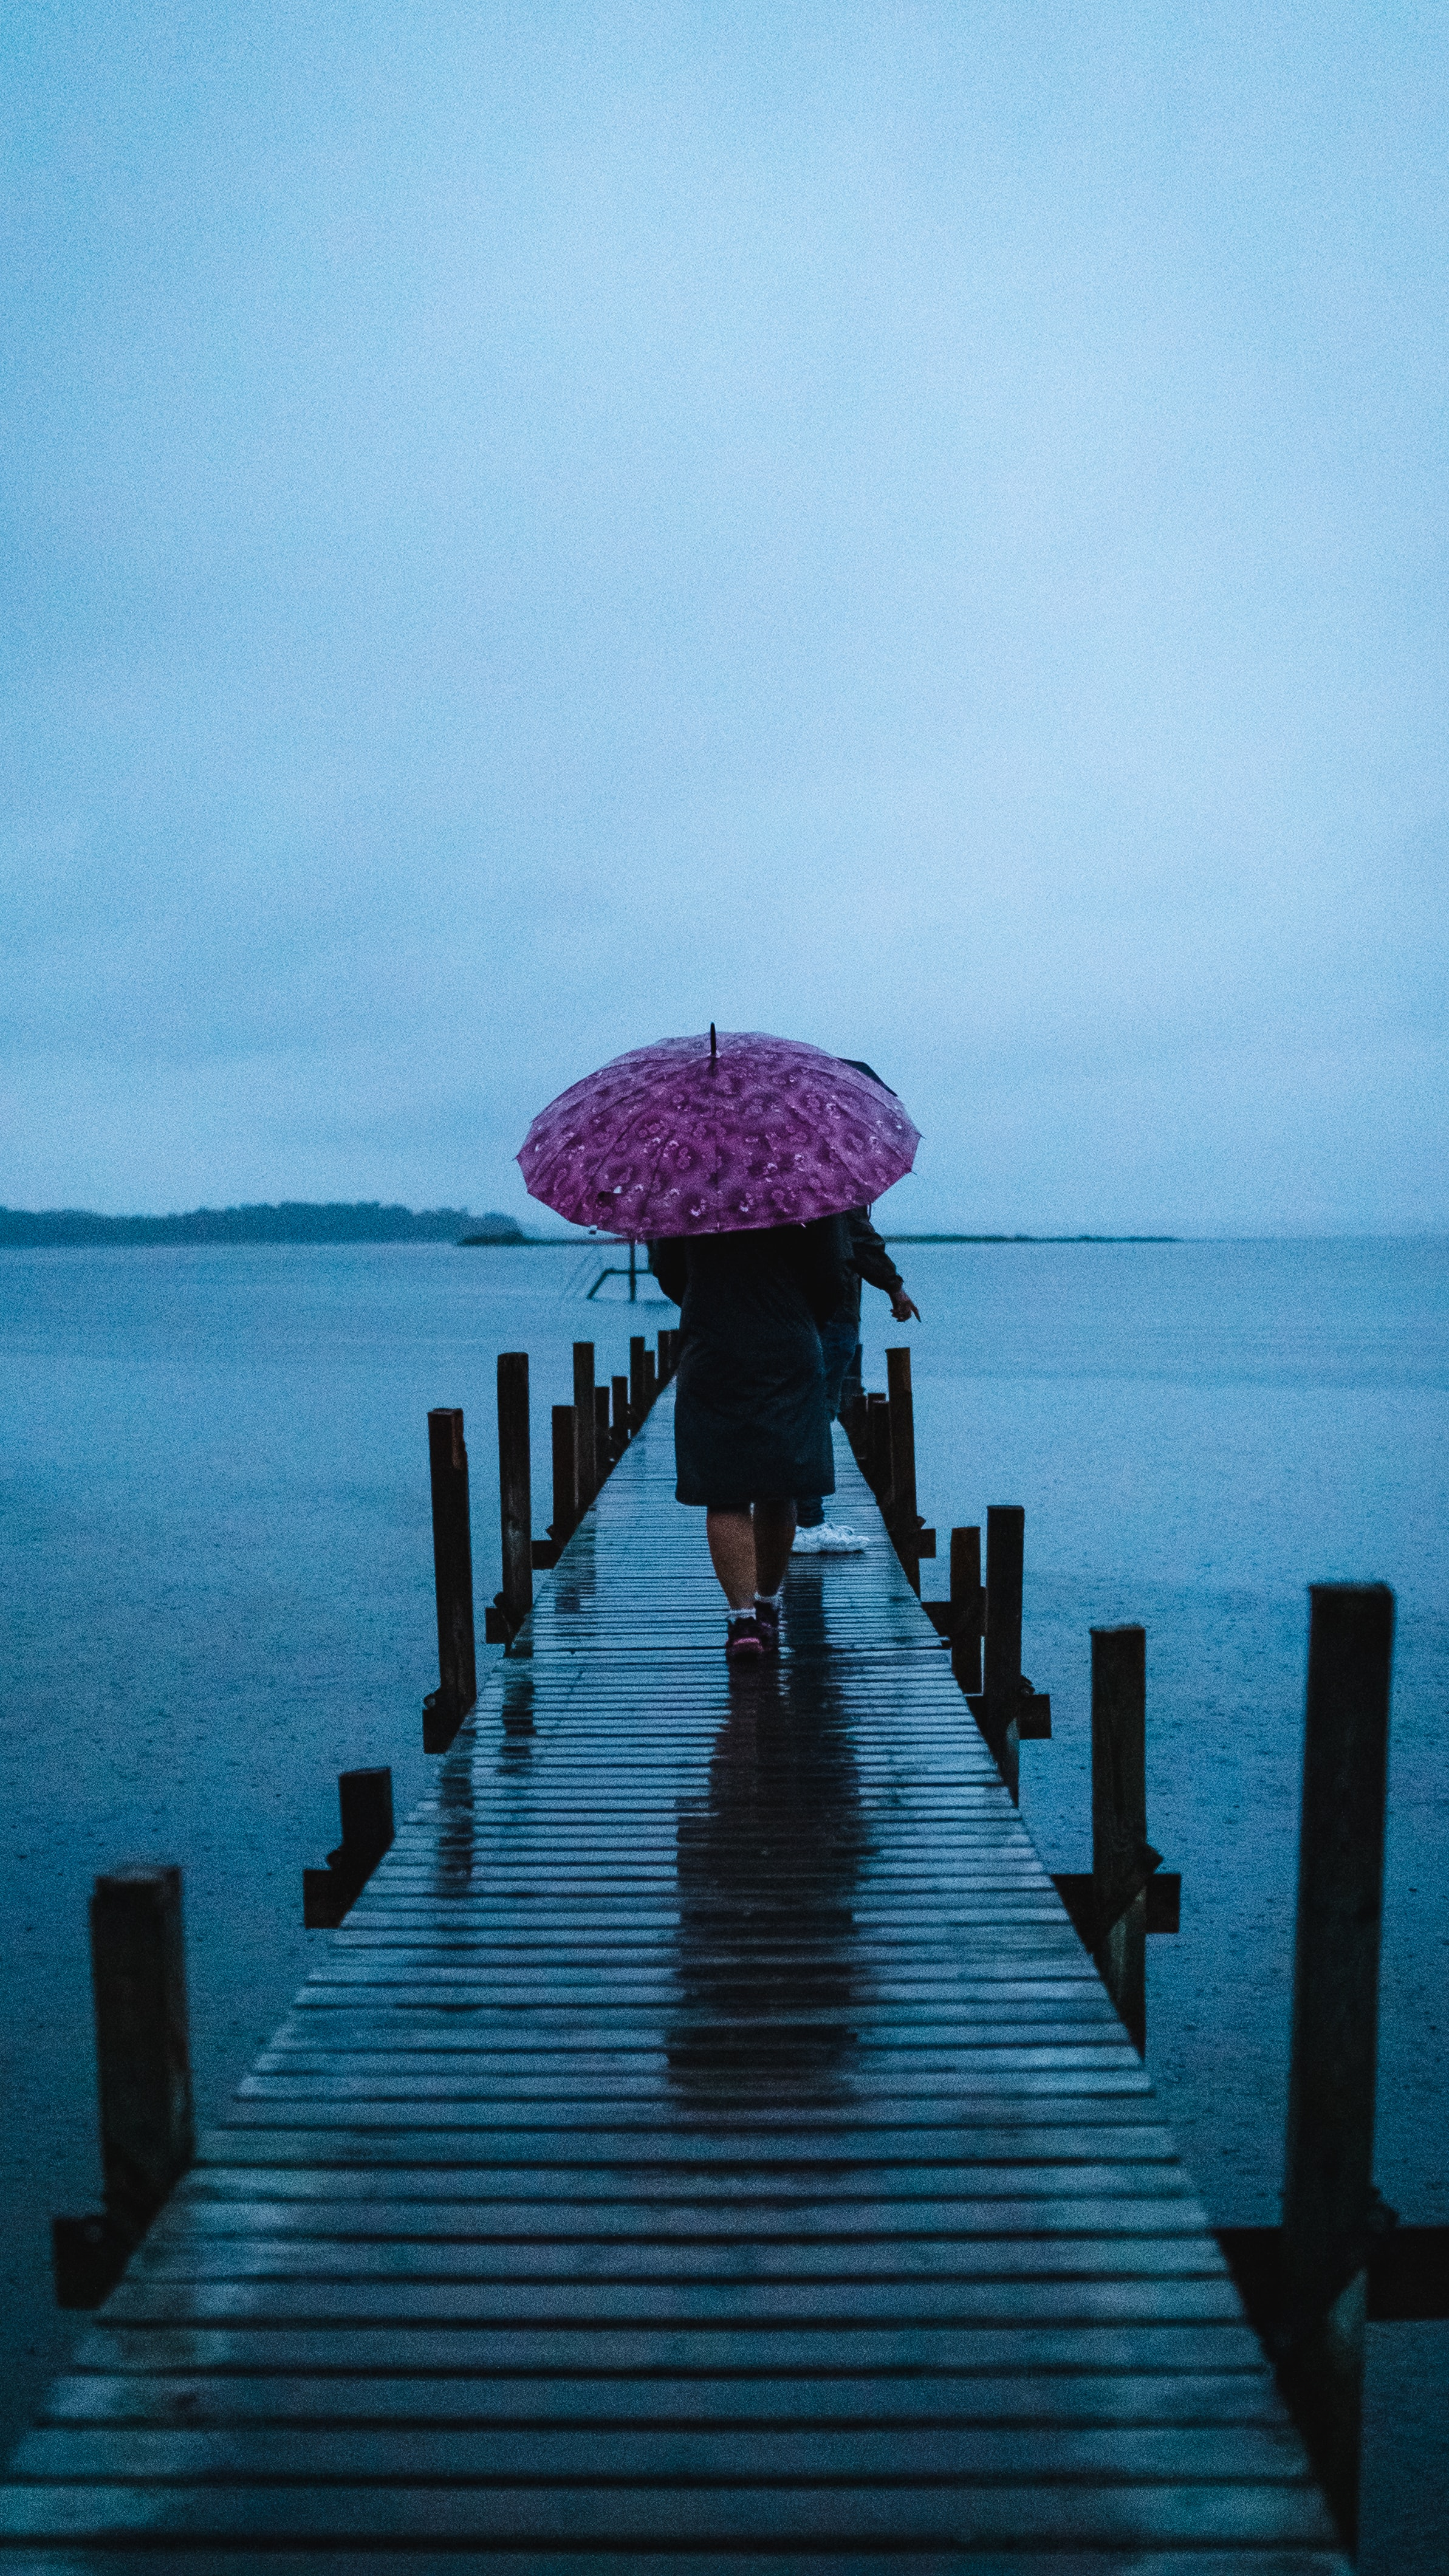 person carrying umbrella walking on dock